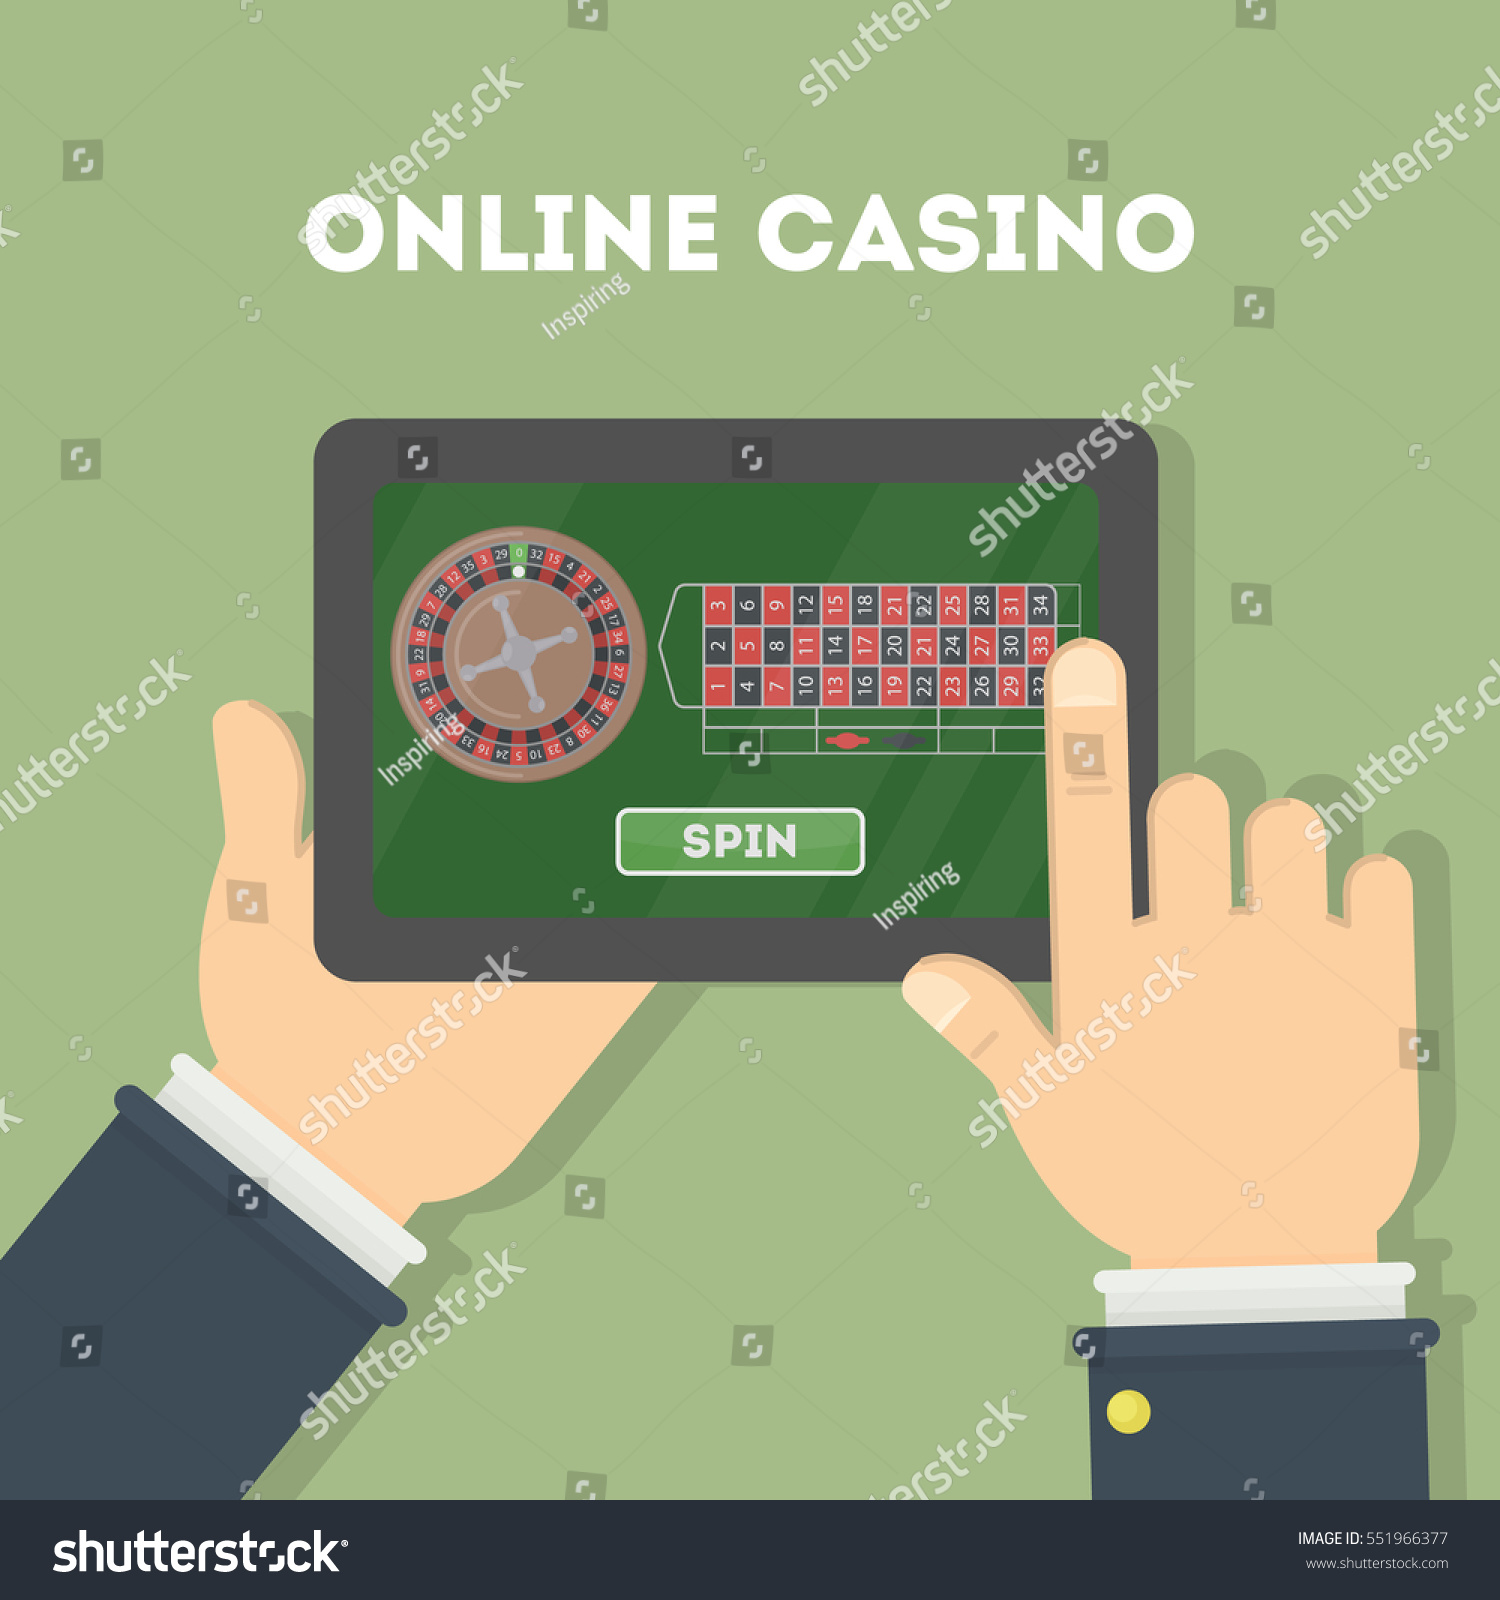 casinos que te regalan dinero por registrarte